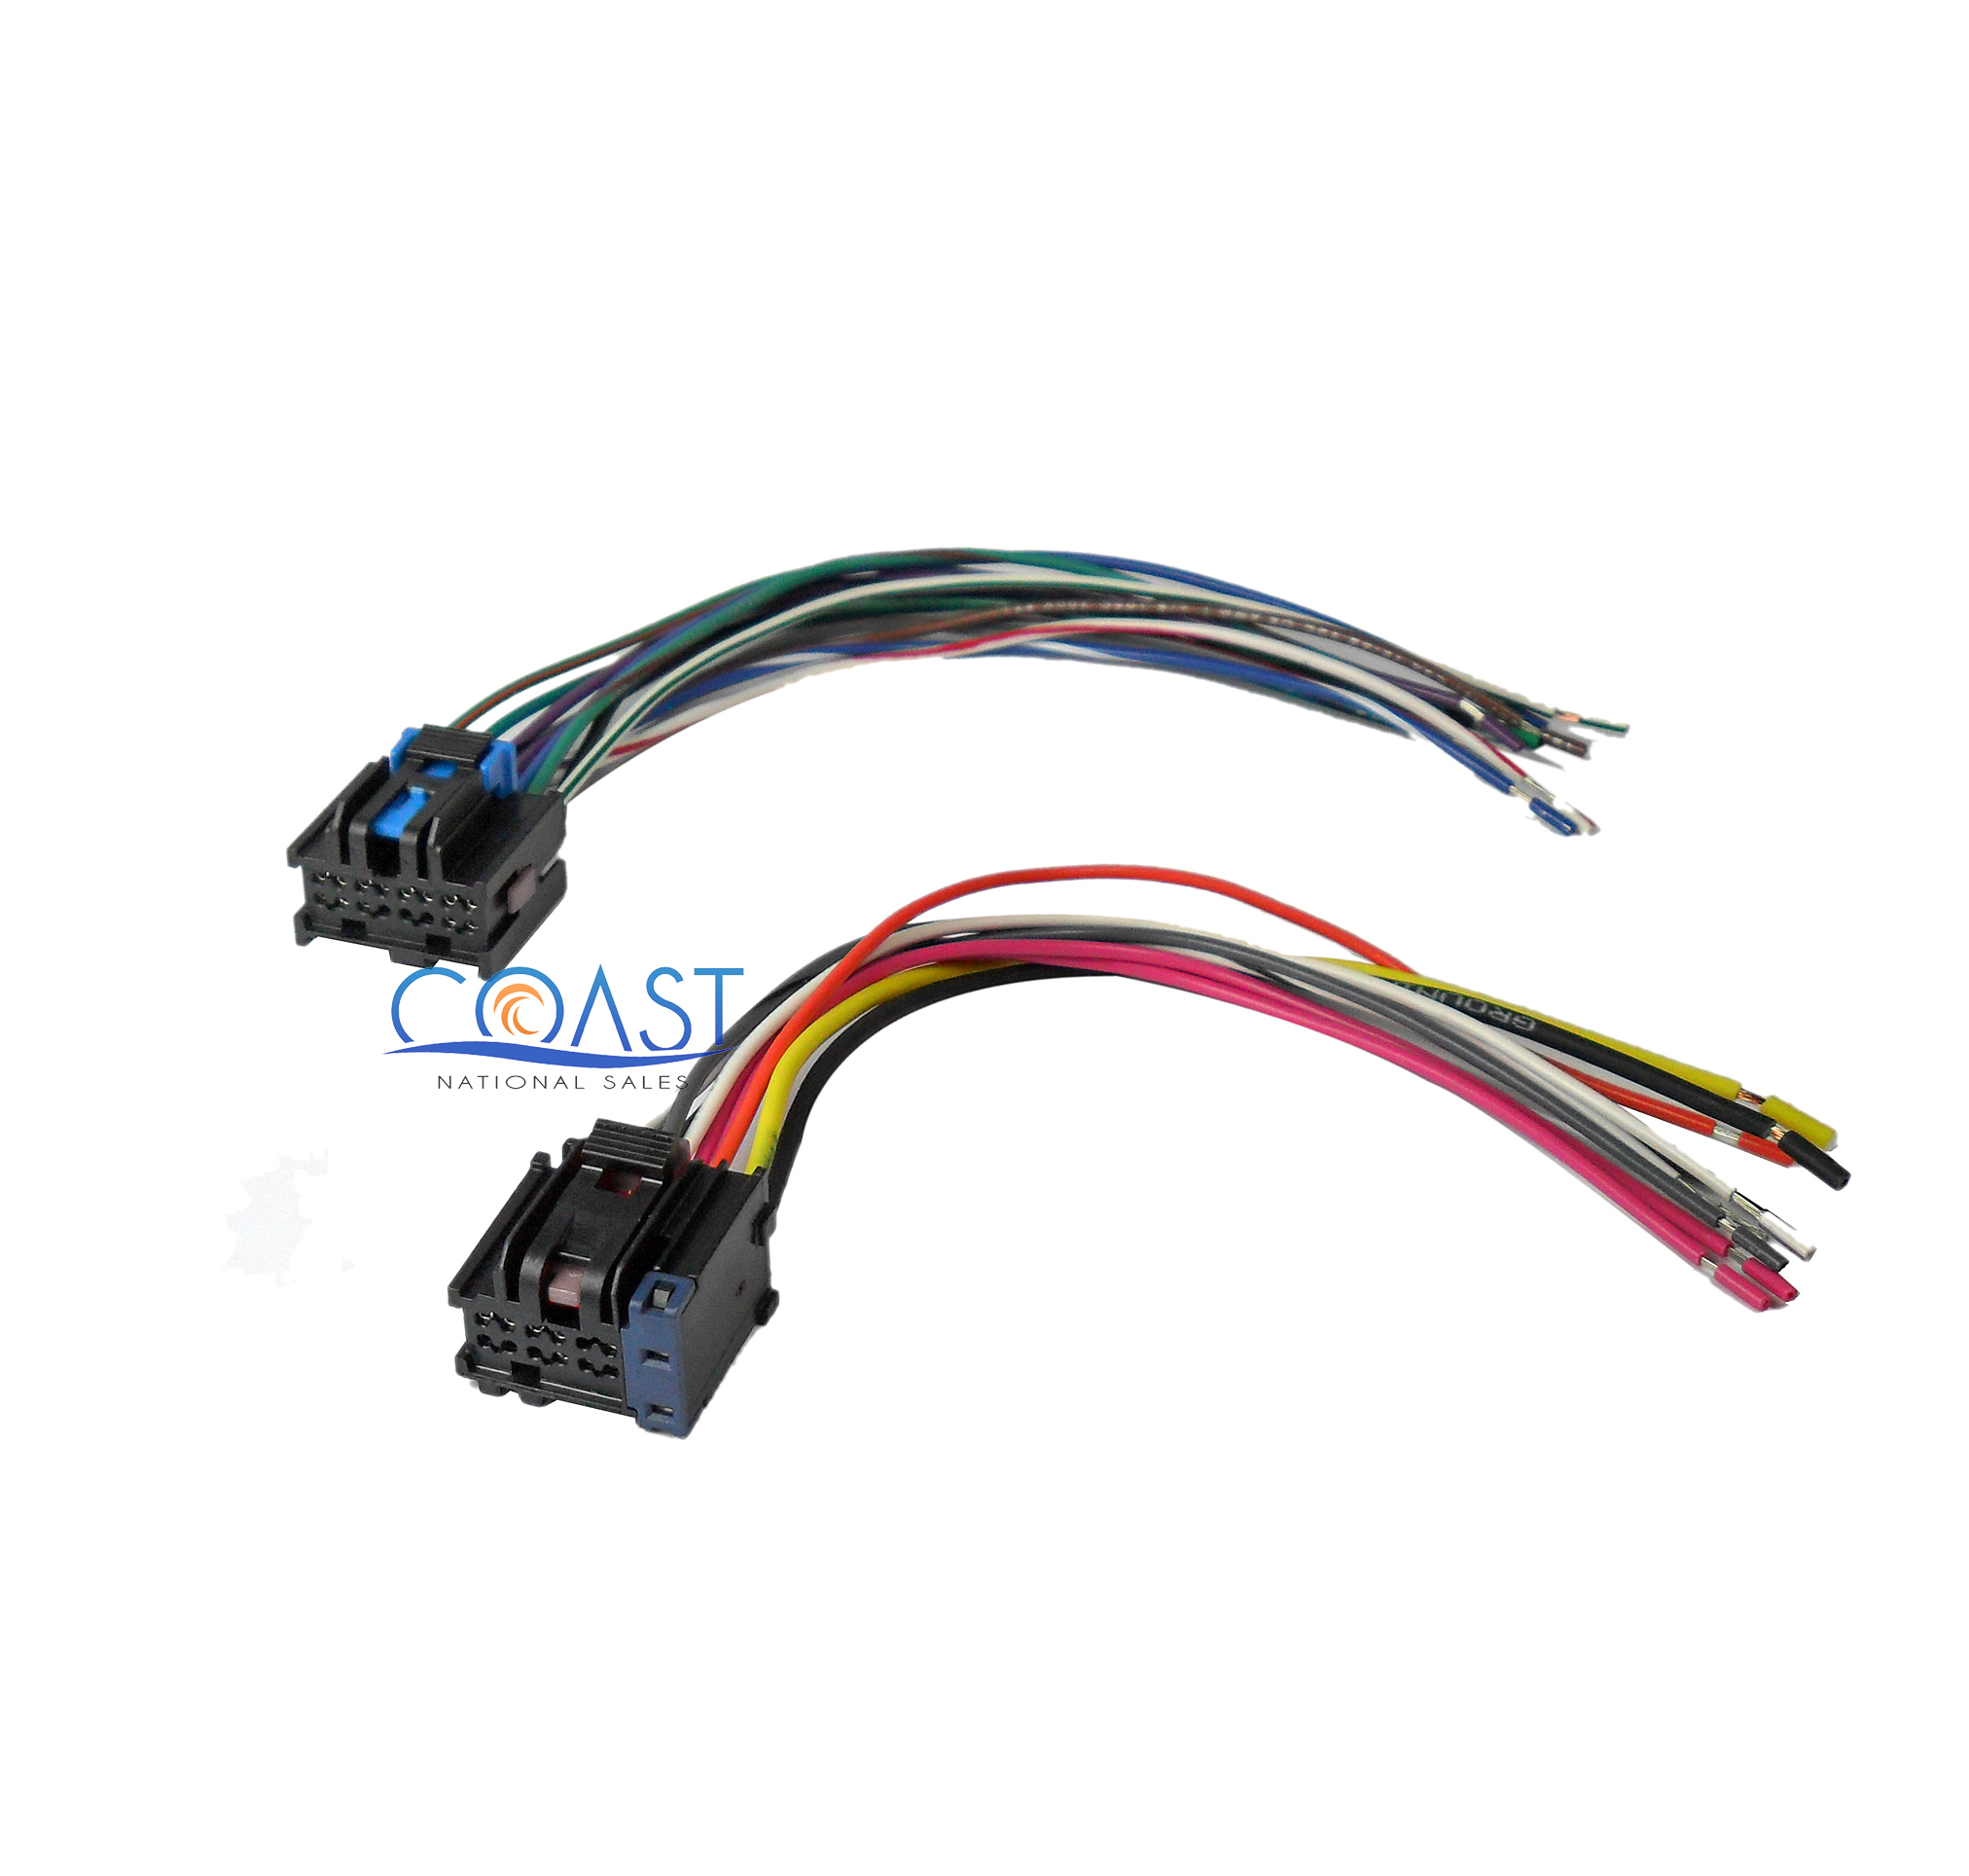 chevy harness car stereo wiring harness to factory radio for 2005-2010 ... 2004 chevy silverado radio harness diagram #15